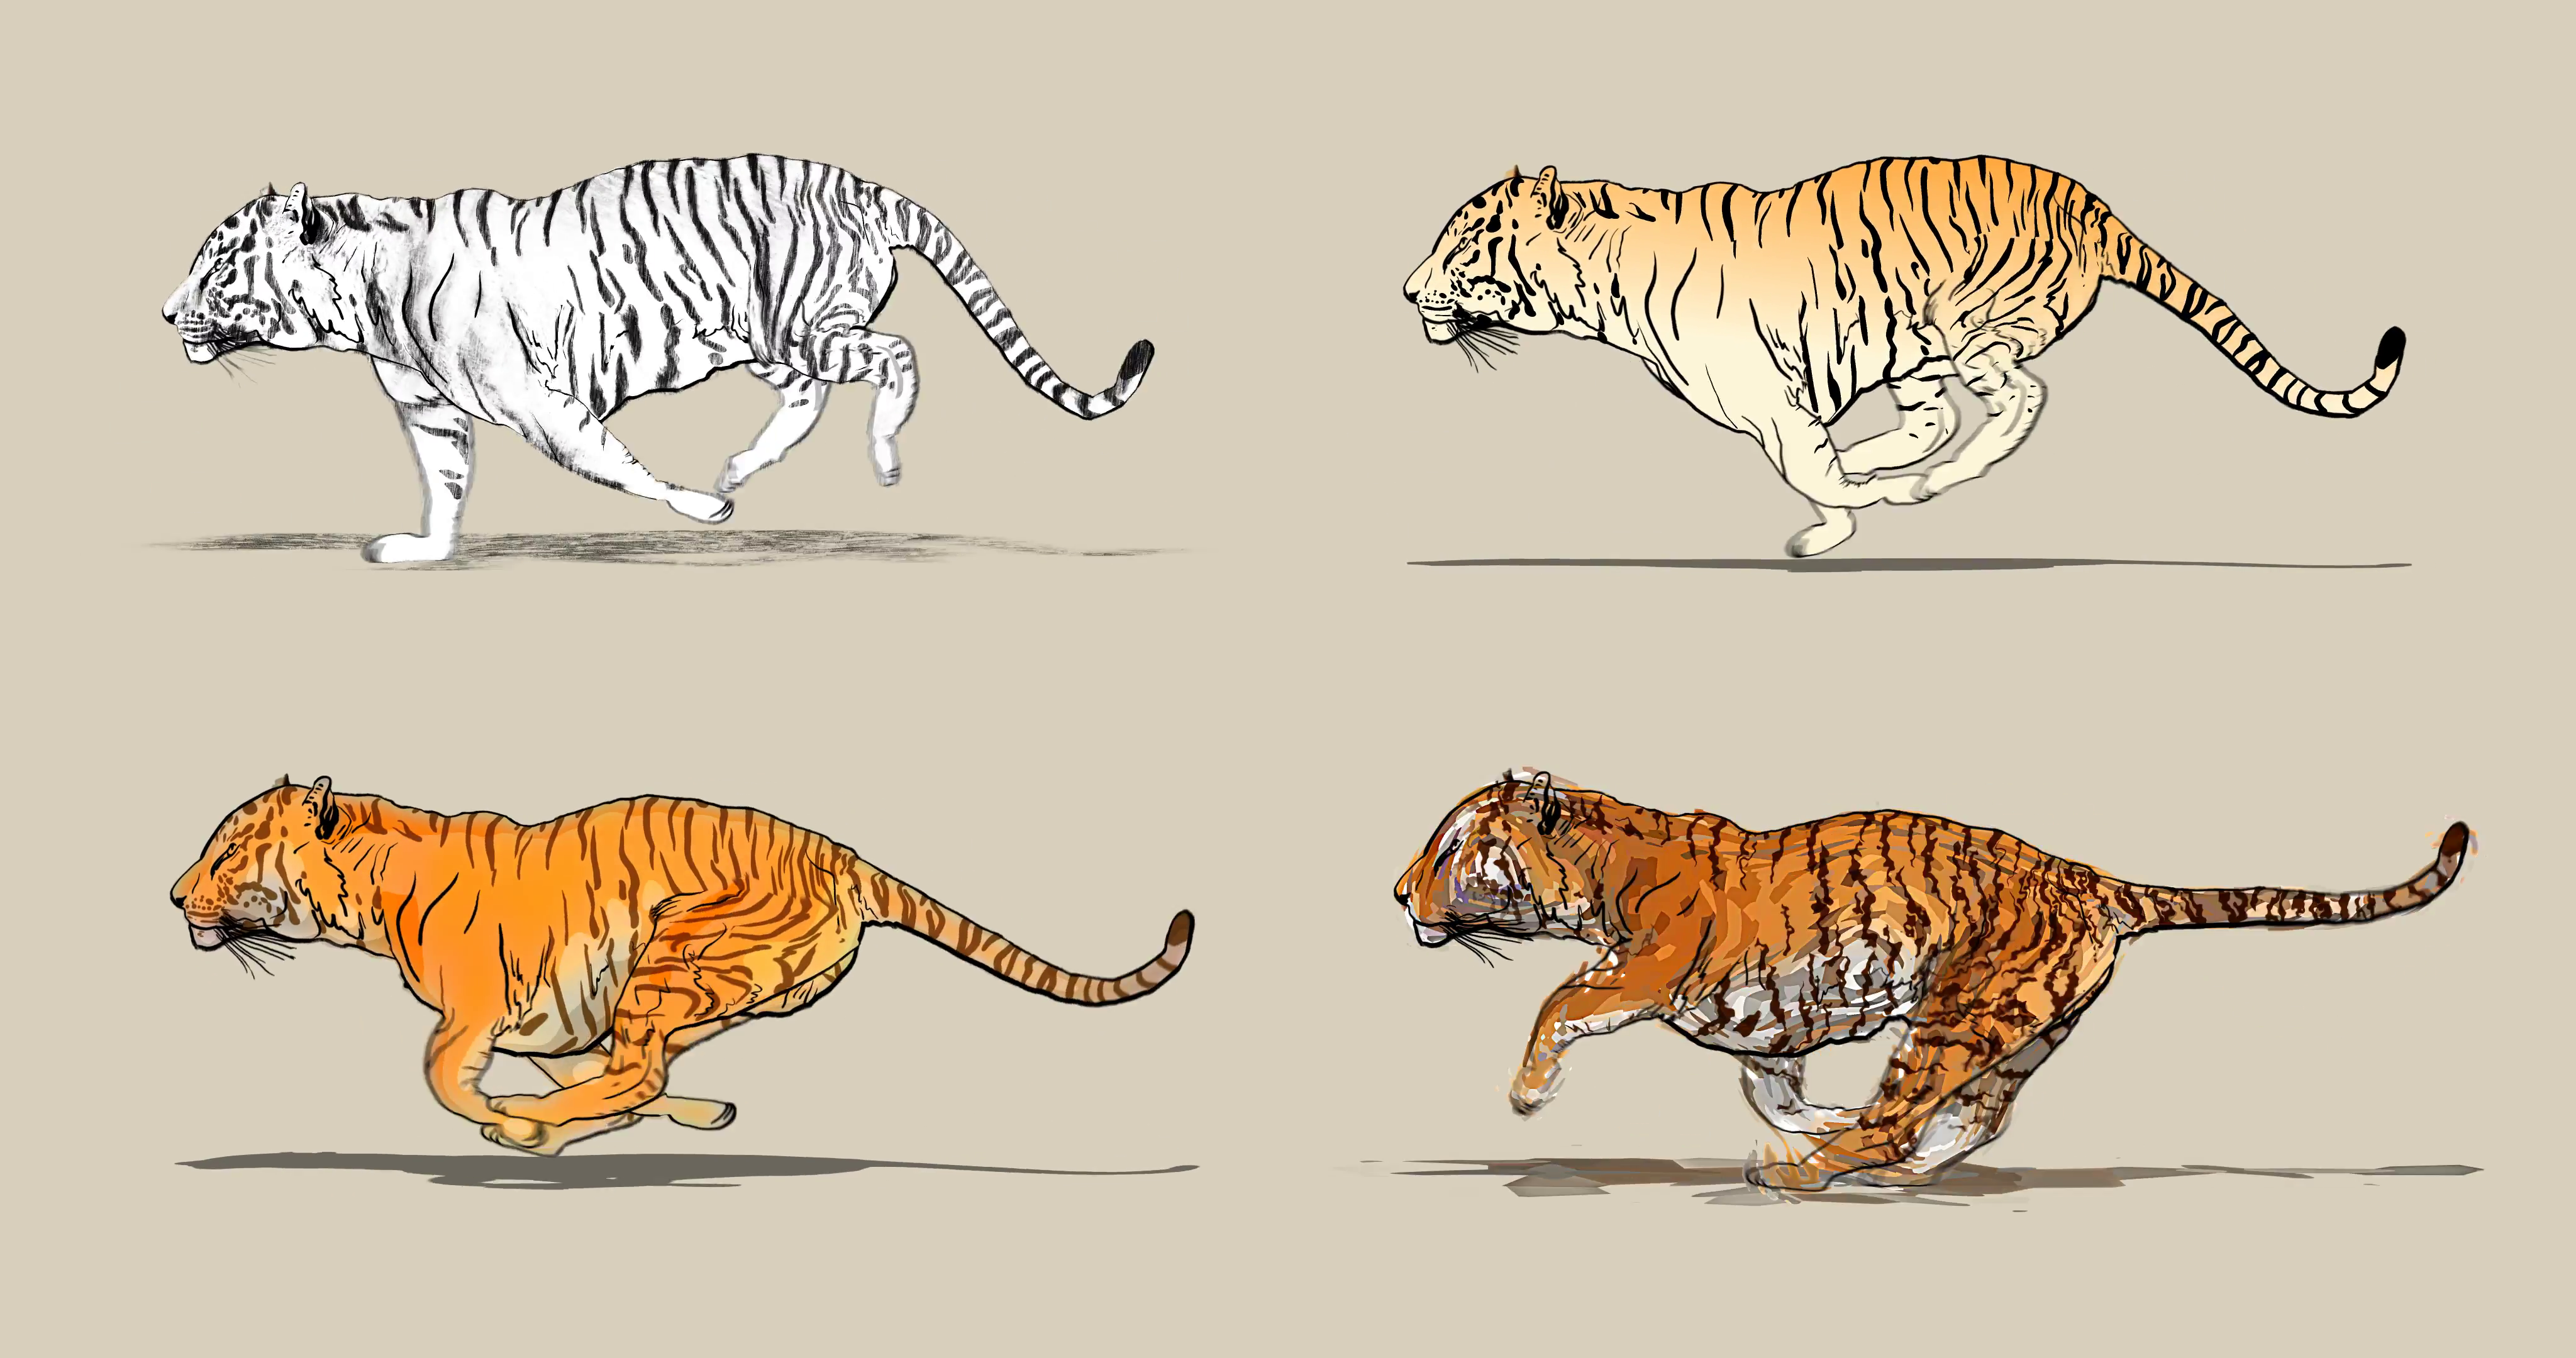 4096x2160 Cartoon Tiger Running. Four Different Drawing Style Pencil